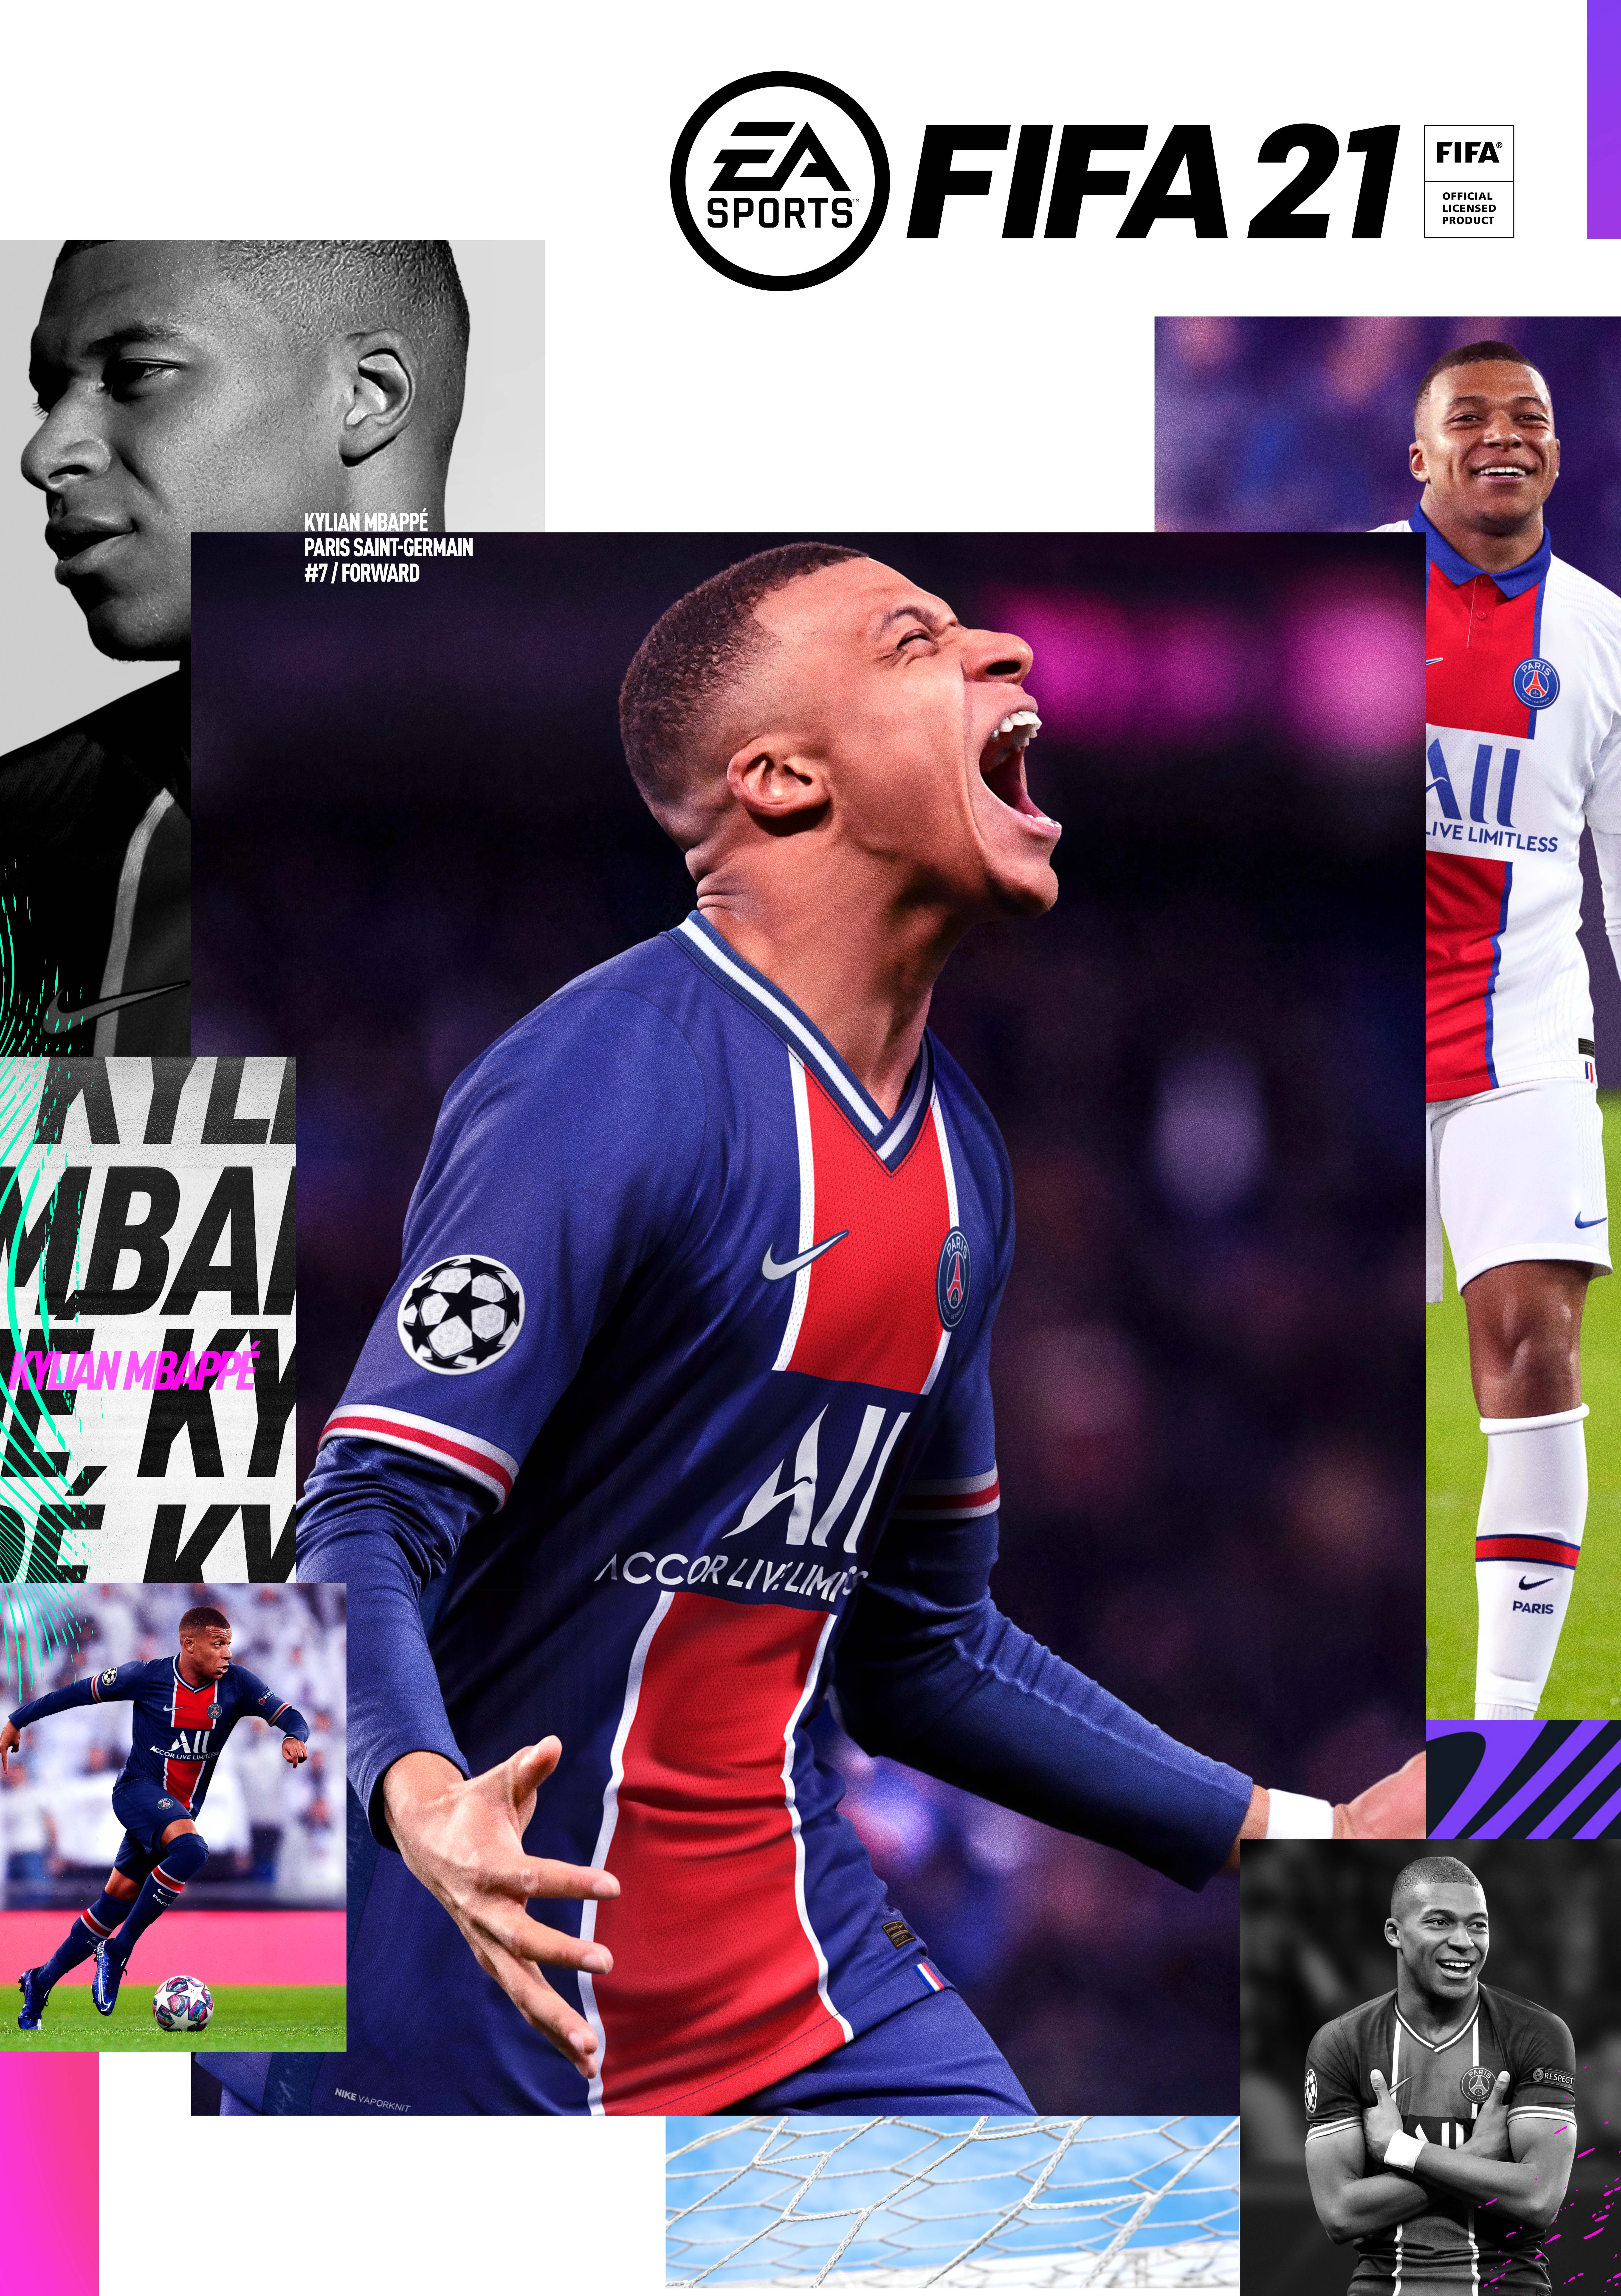 ea sports fifa 21 brings big updates to career mode and gameplay realism plus new ways to team up online with friends parliamo di videogiochi parliamo di videogiochi